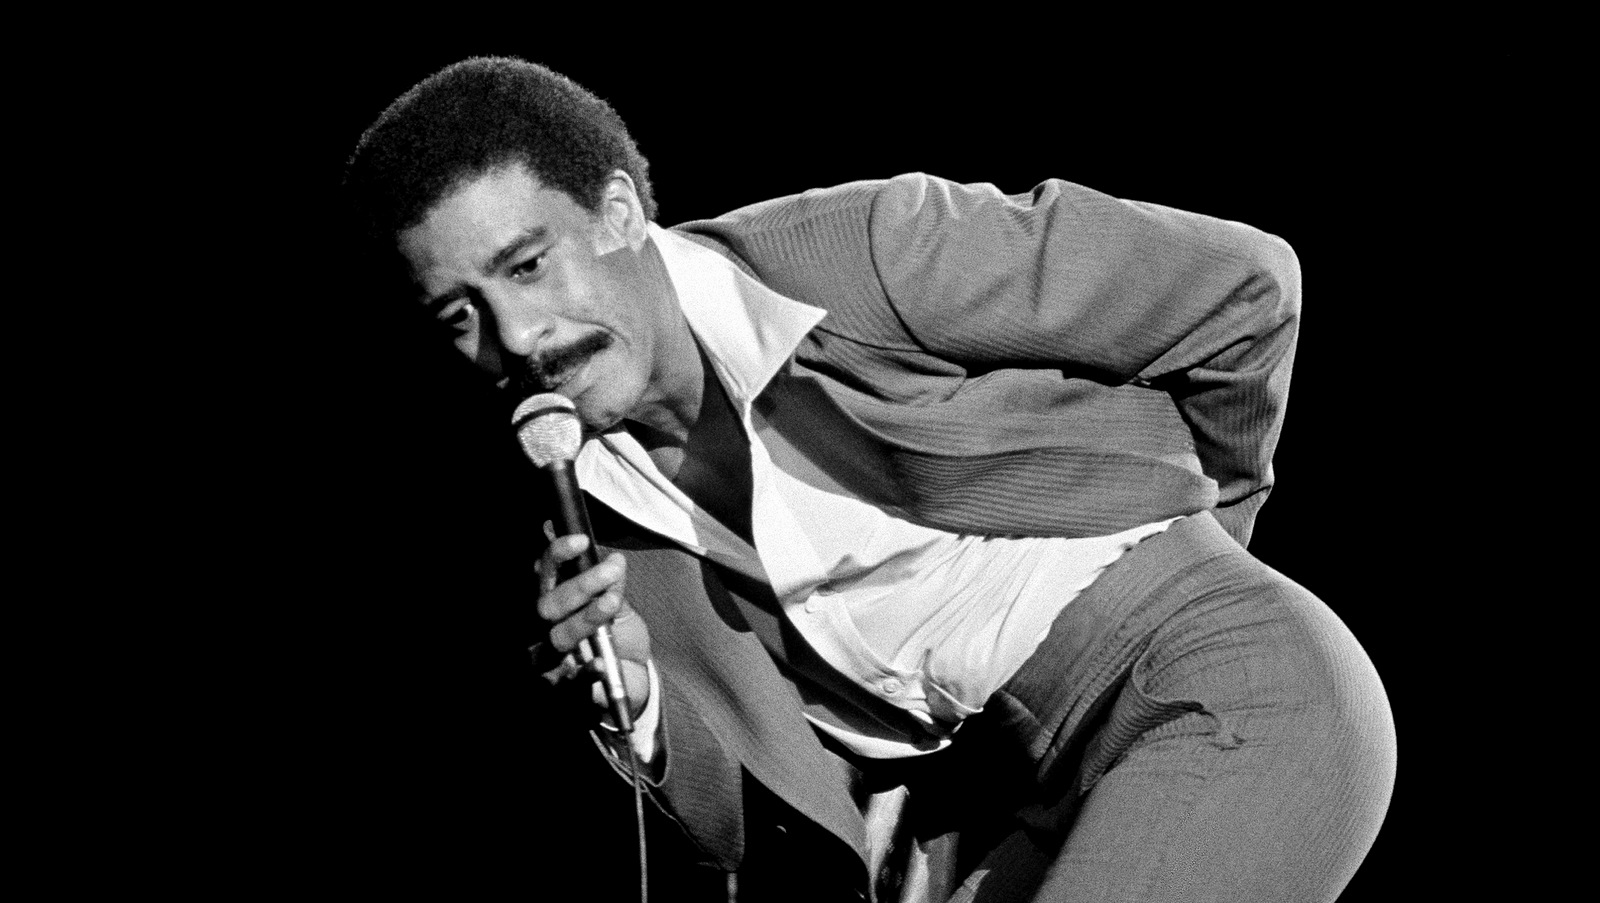 Comedian Richard Pryor gestures to the audience, after the audience jeered him for his remarks at a gathering billed as A Star Spangled Night for Rights, Sept. 19, 1977, Hollywood Bowl, Los Angeles, Calif. After the gesture, Pryor slammed the mike down and left the show. (AP/Lennox McLendon)